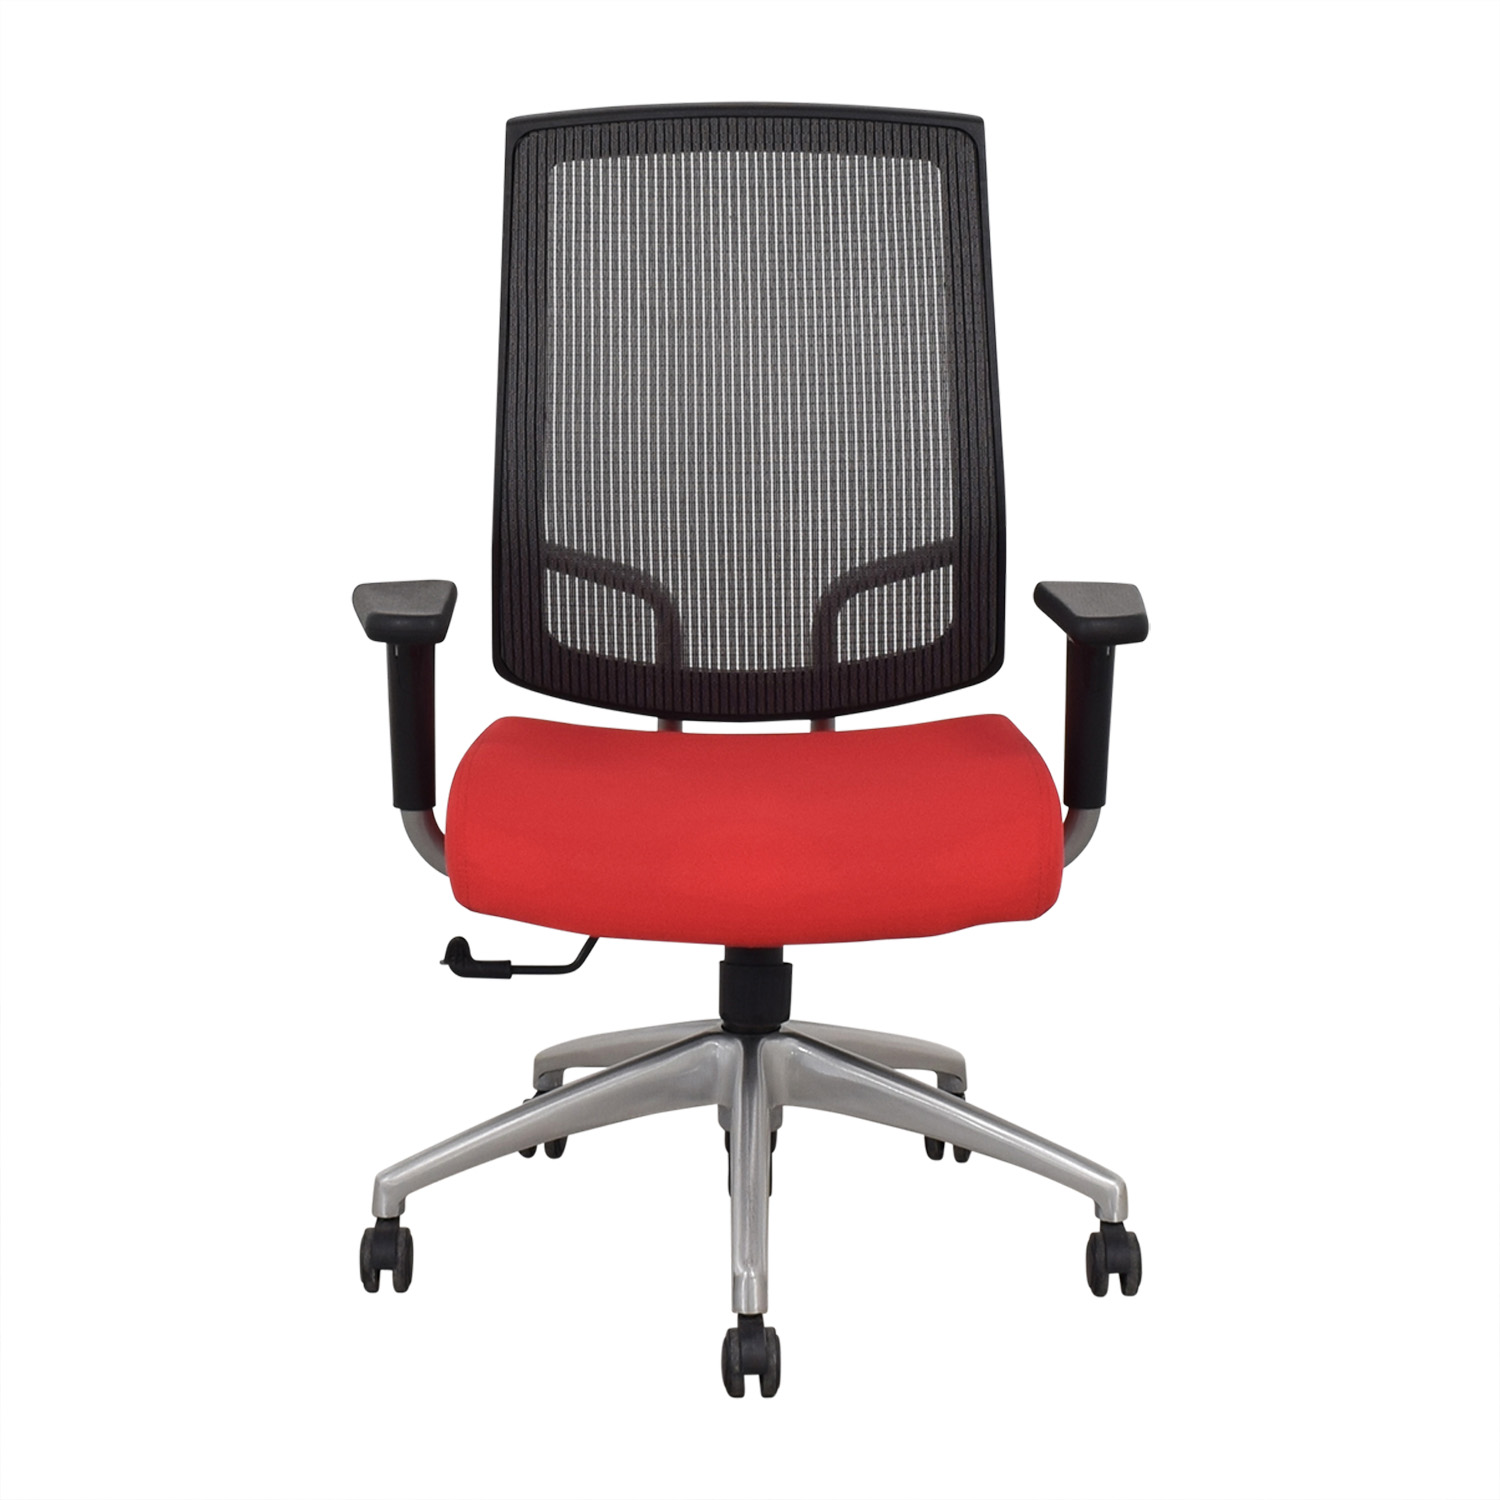 SitOnIt SitOnIt Focus High Back Office Chair red & black